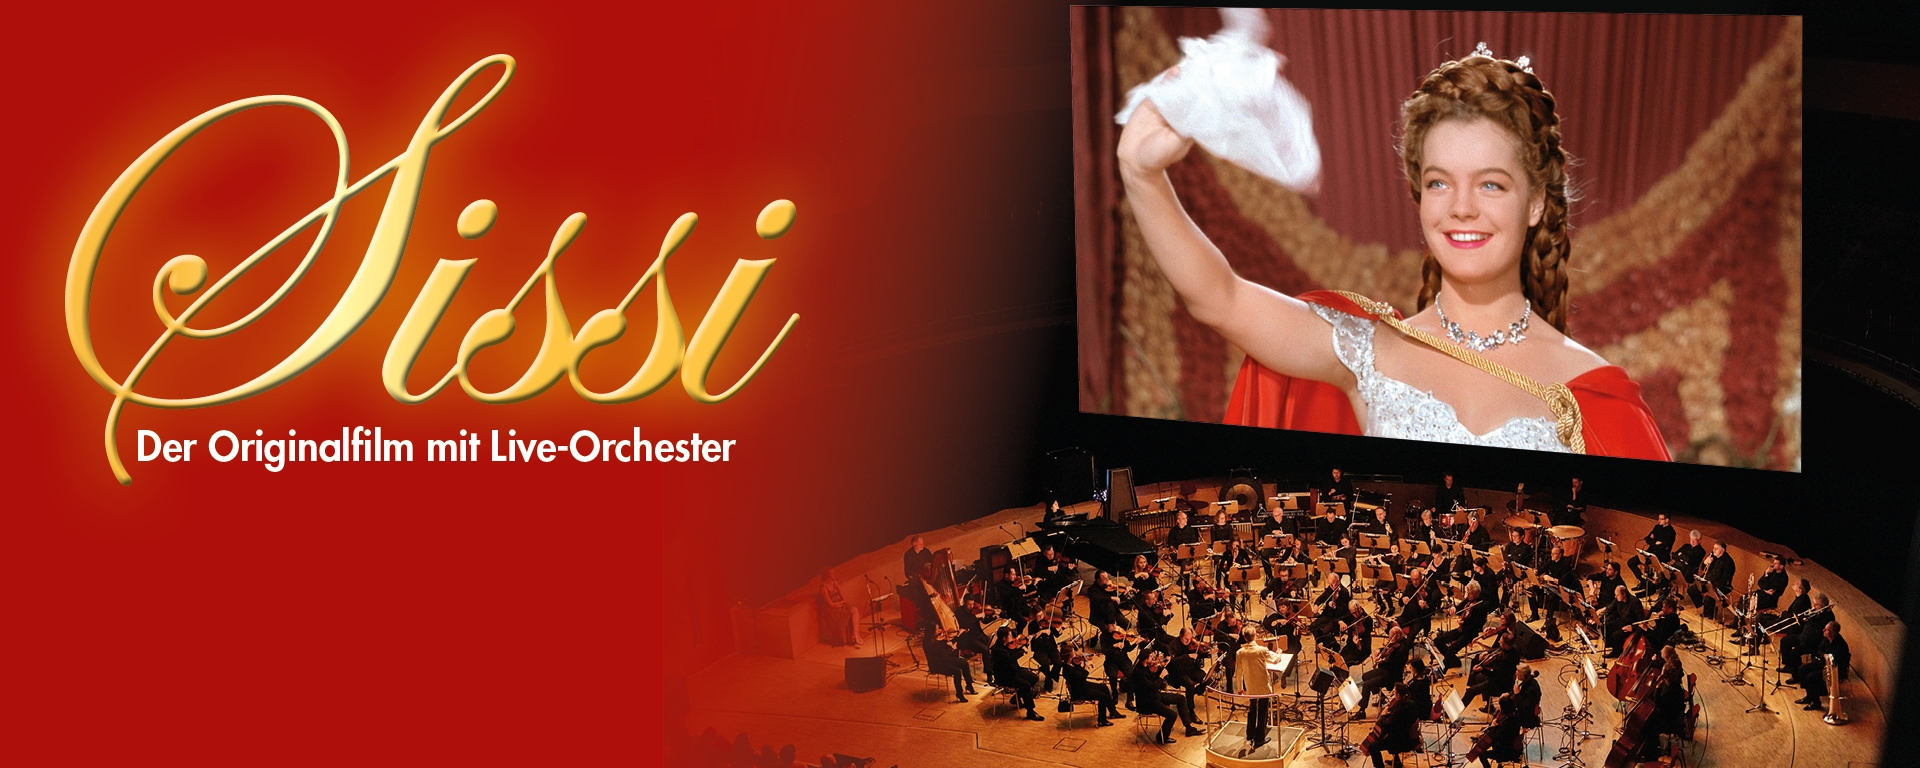 Sissi – The Original Film with Live Orchestra